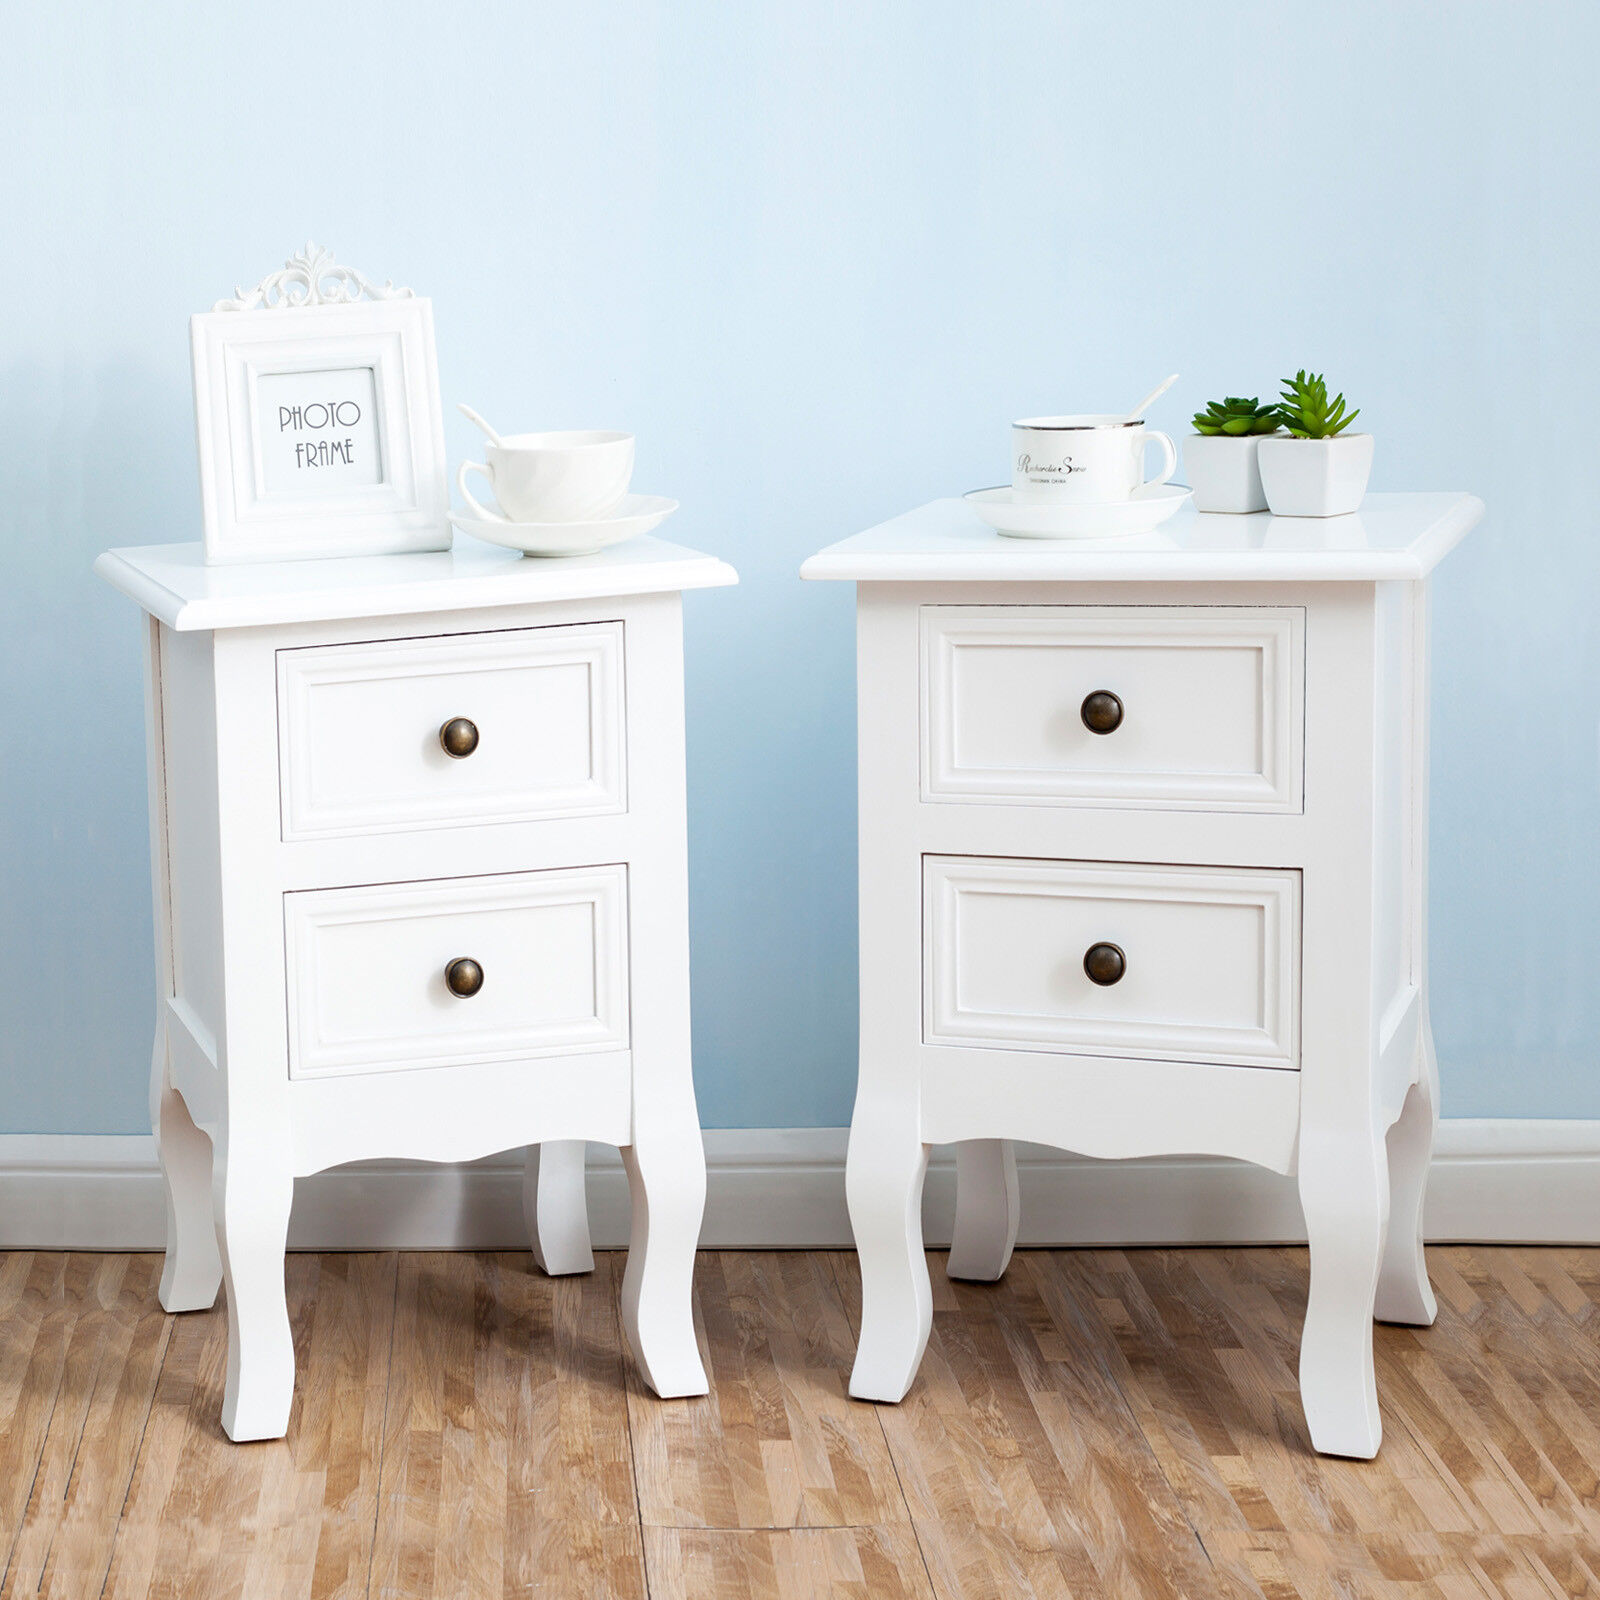 Details about 2 Pieces Wooden Nightstand Bedside Sofa Side Table End Table  Bedroom Furniture